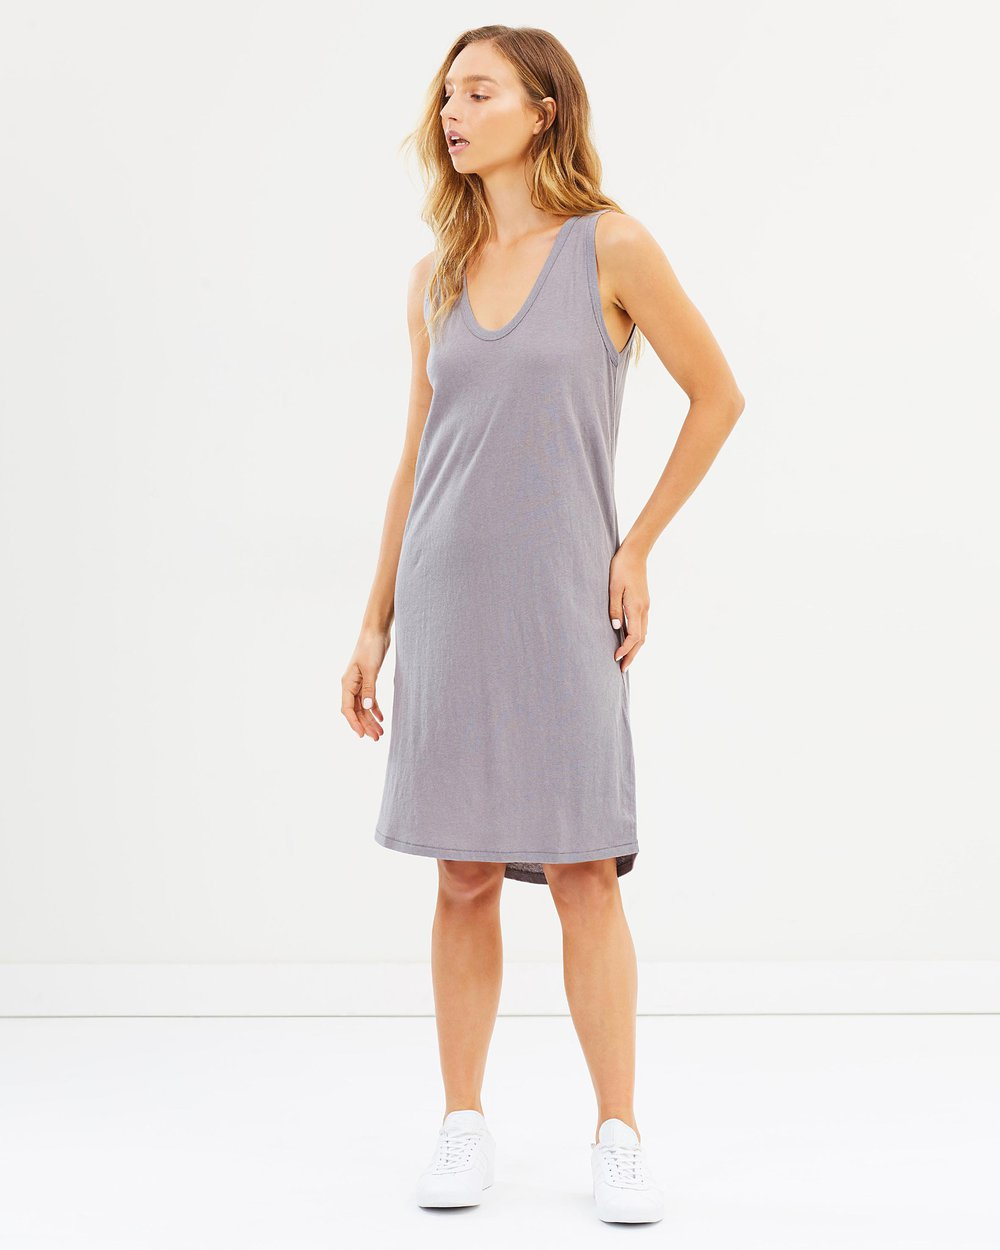 Assembly Label Curve Dress - Steel